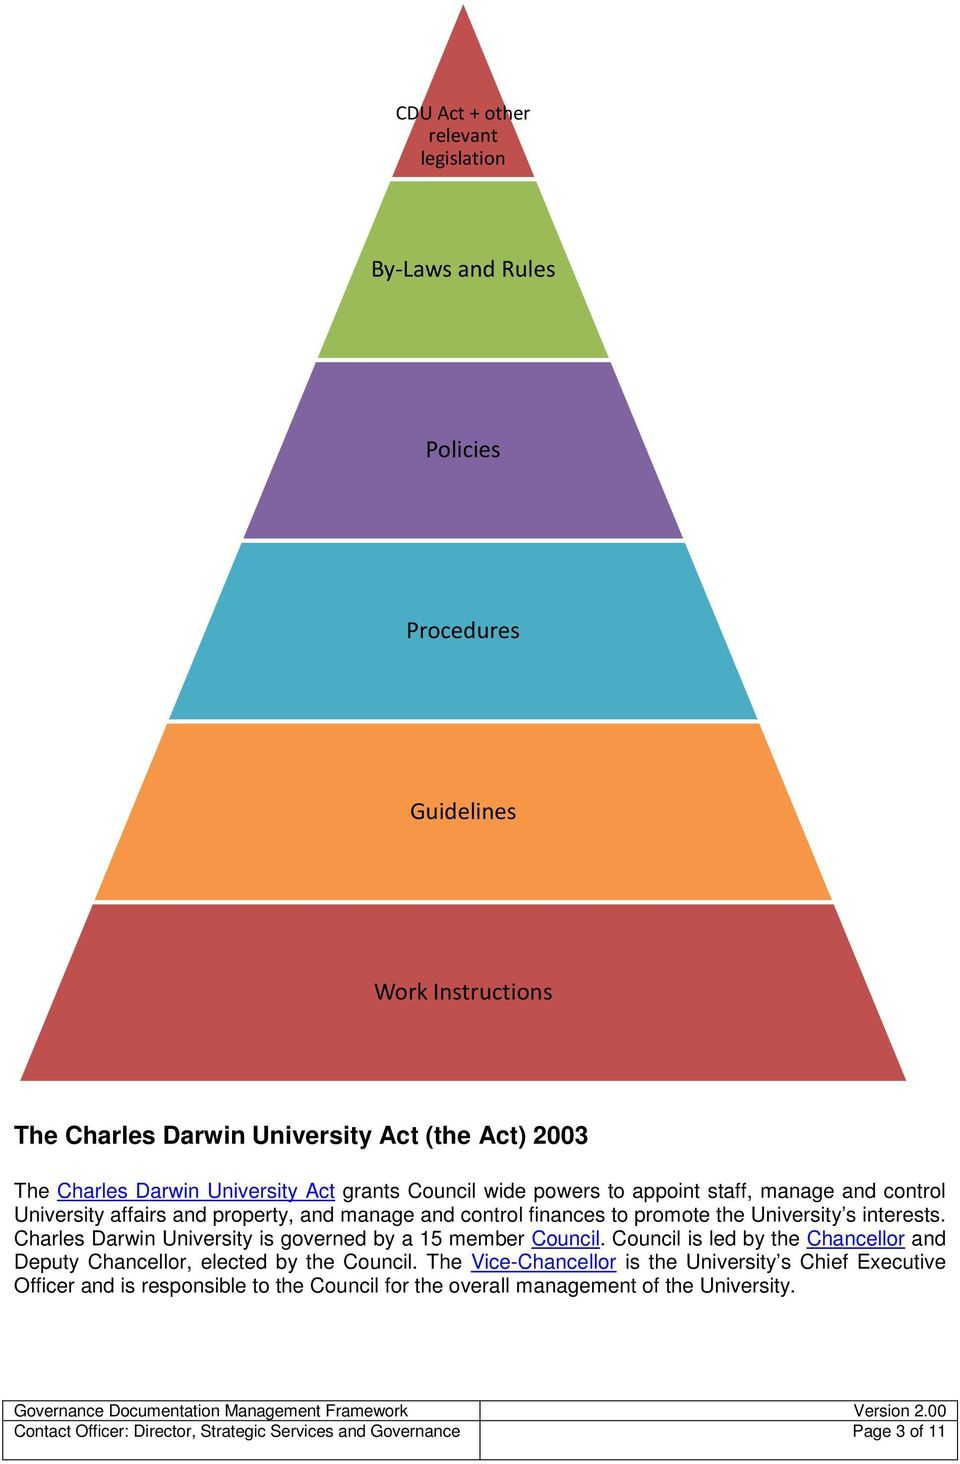 interests. Charles Darwin University is governed by a 15 member Council. Council is led by the Chancellor and Deputy Chancellor, elected by the Council.